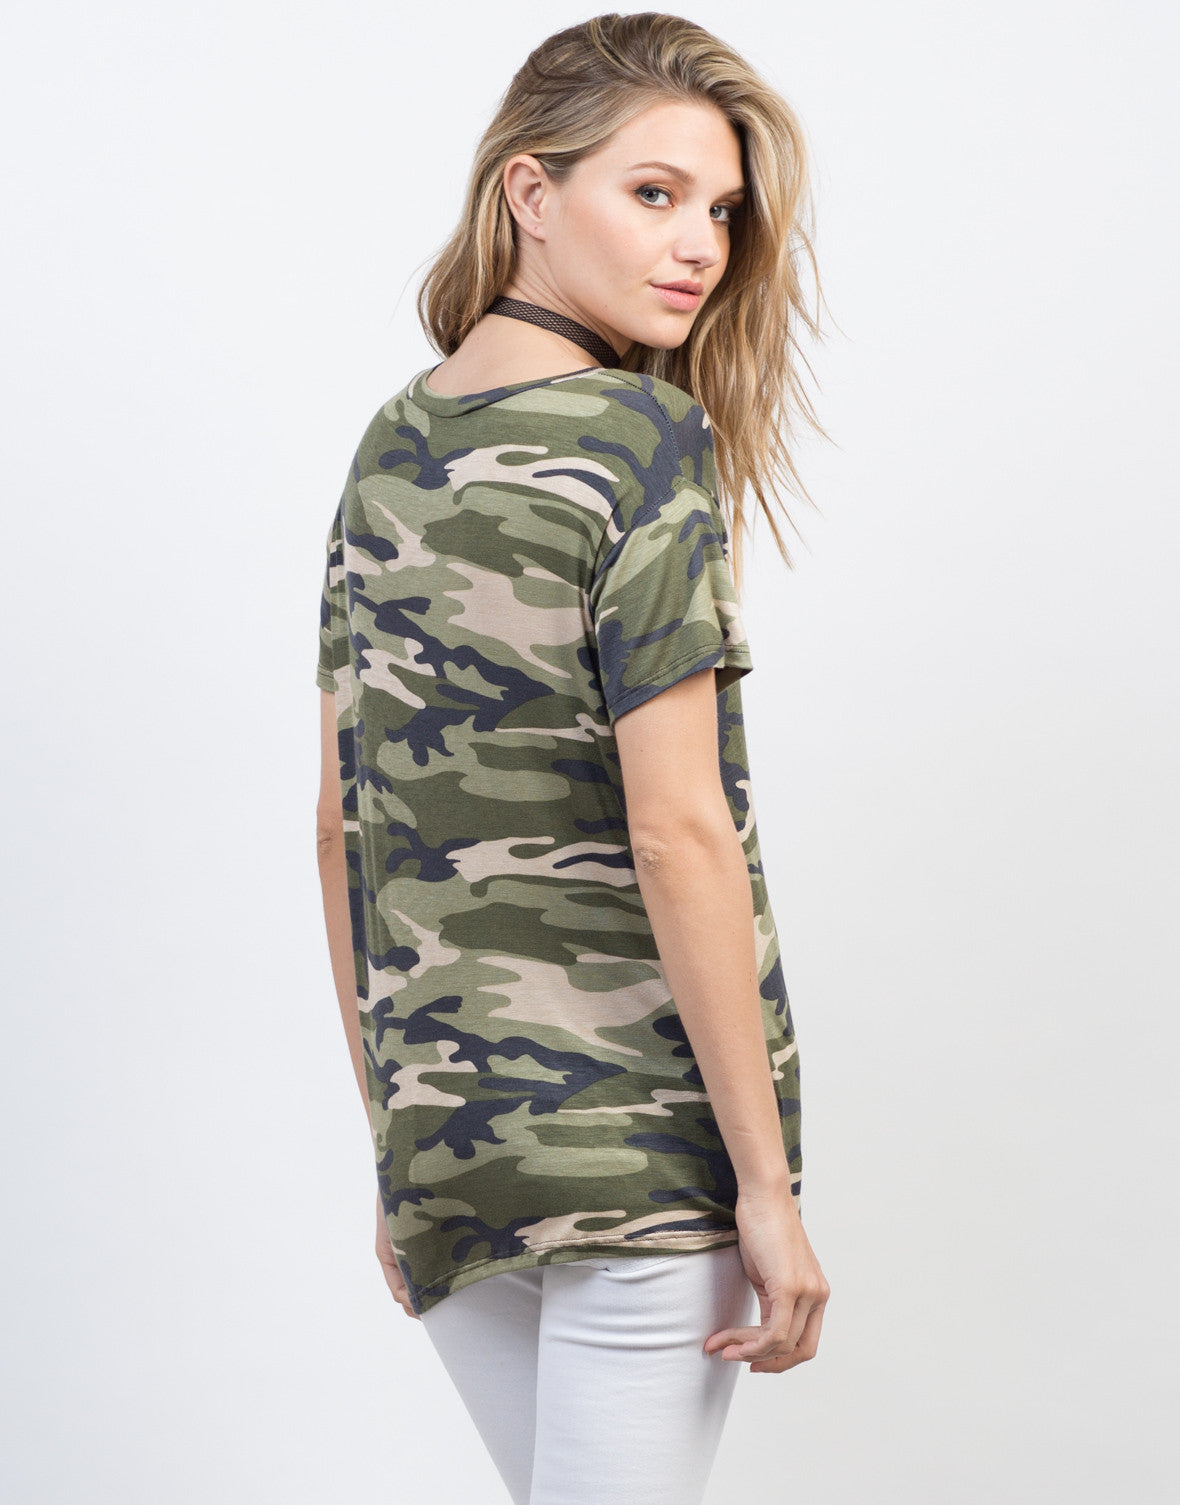 Back View of Soft Camo Tee